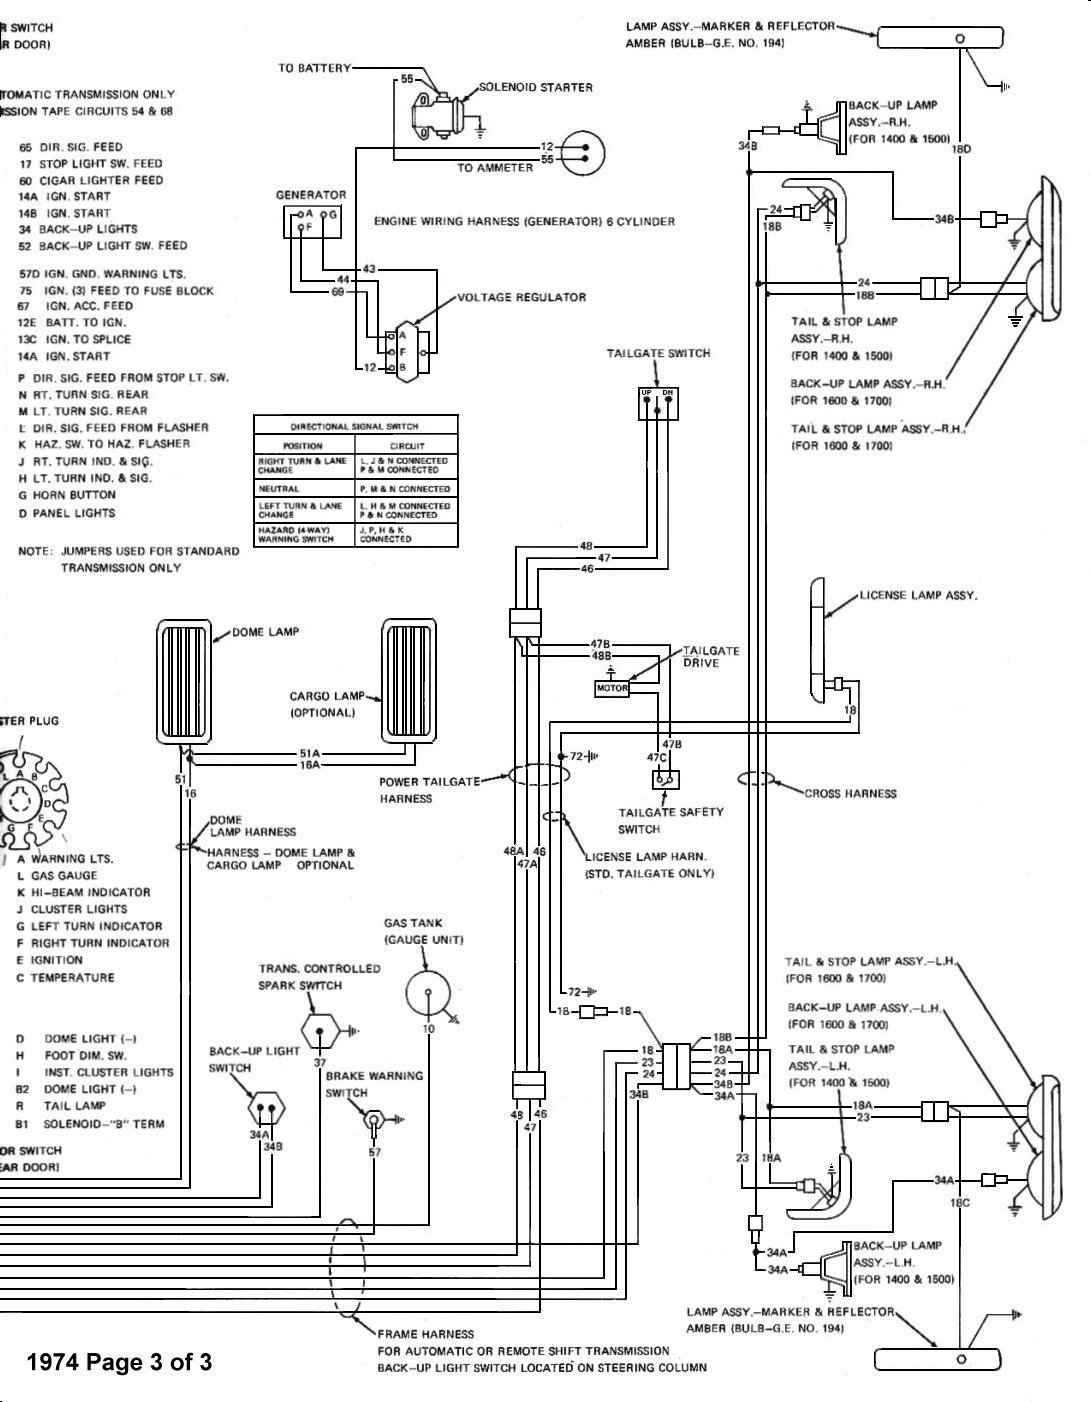 holley projection wiring diagram 16 5 artatec automobile de \u2022holley projection wiring diagram